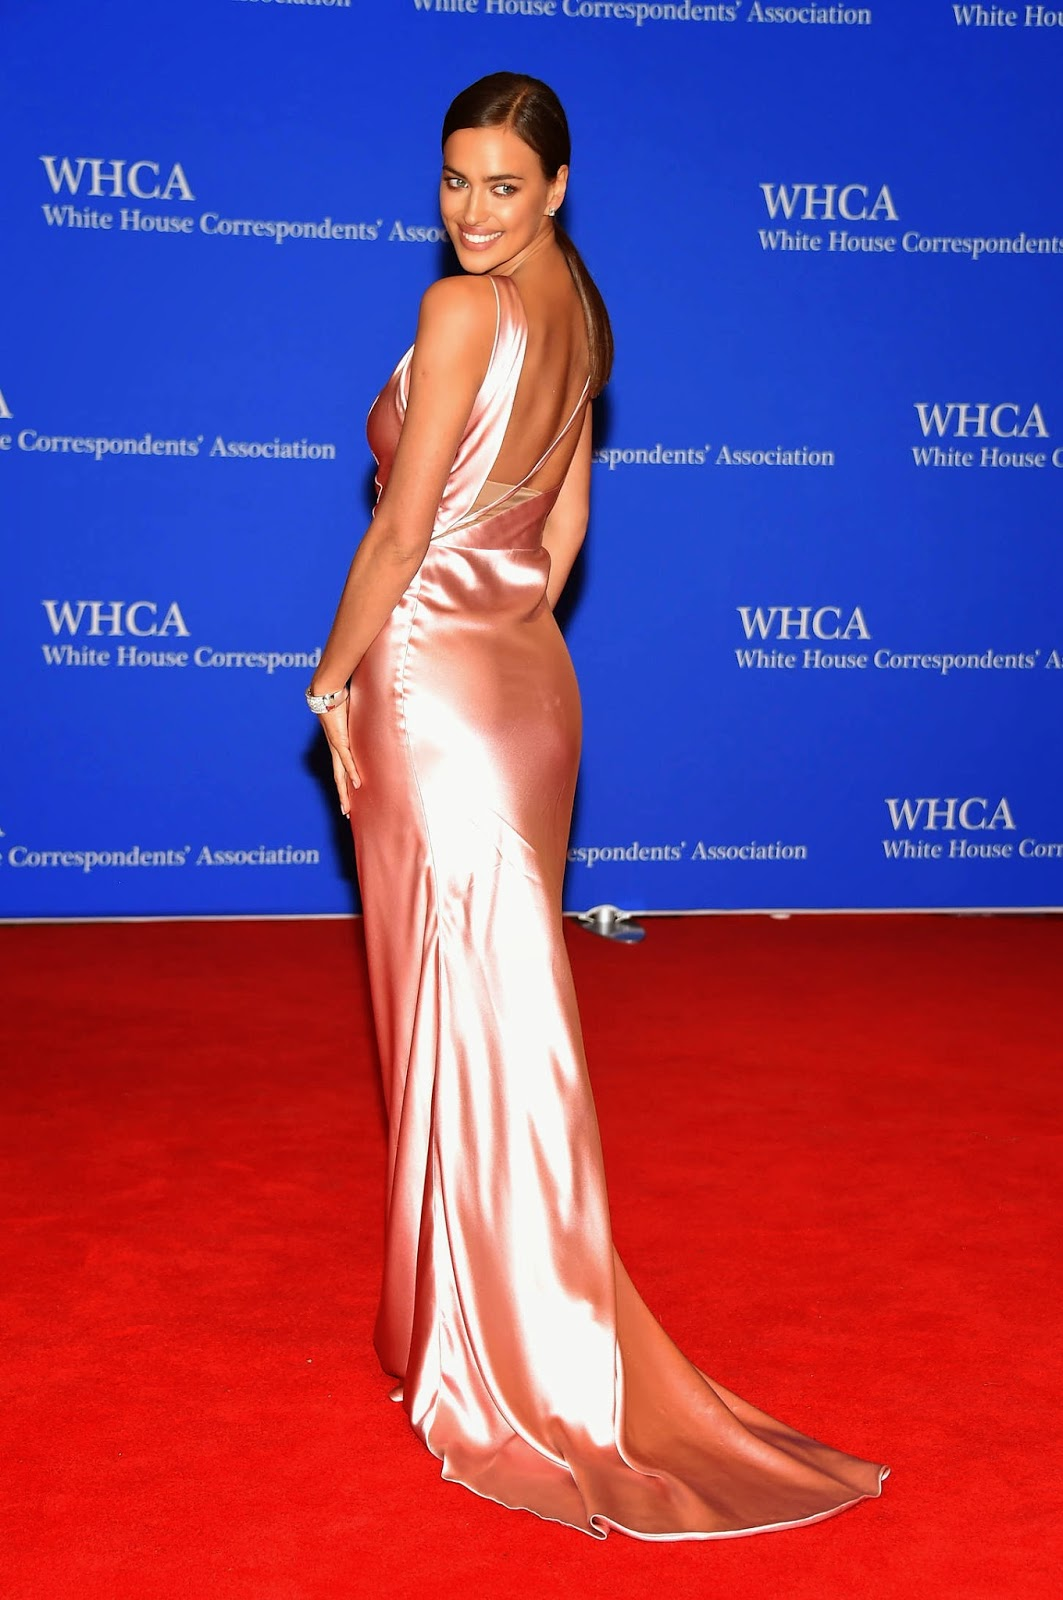 Irina Shayk in a slinky figure hugging dress at the 2015 White House Correspondents' Association Dinner